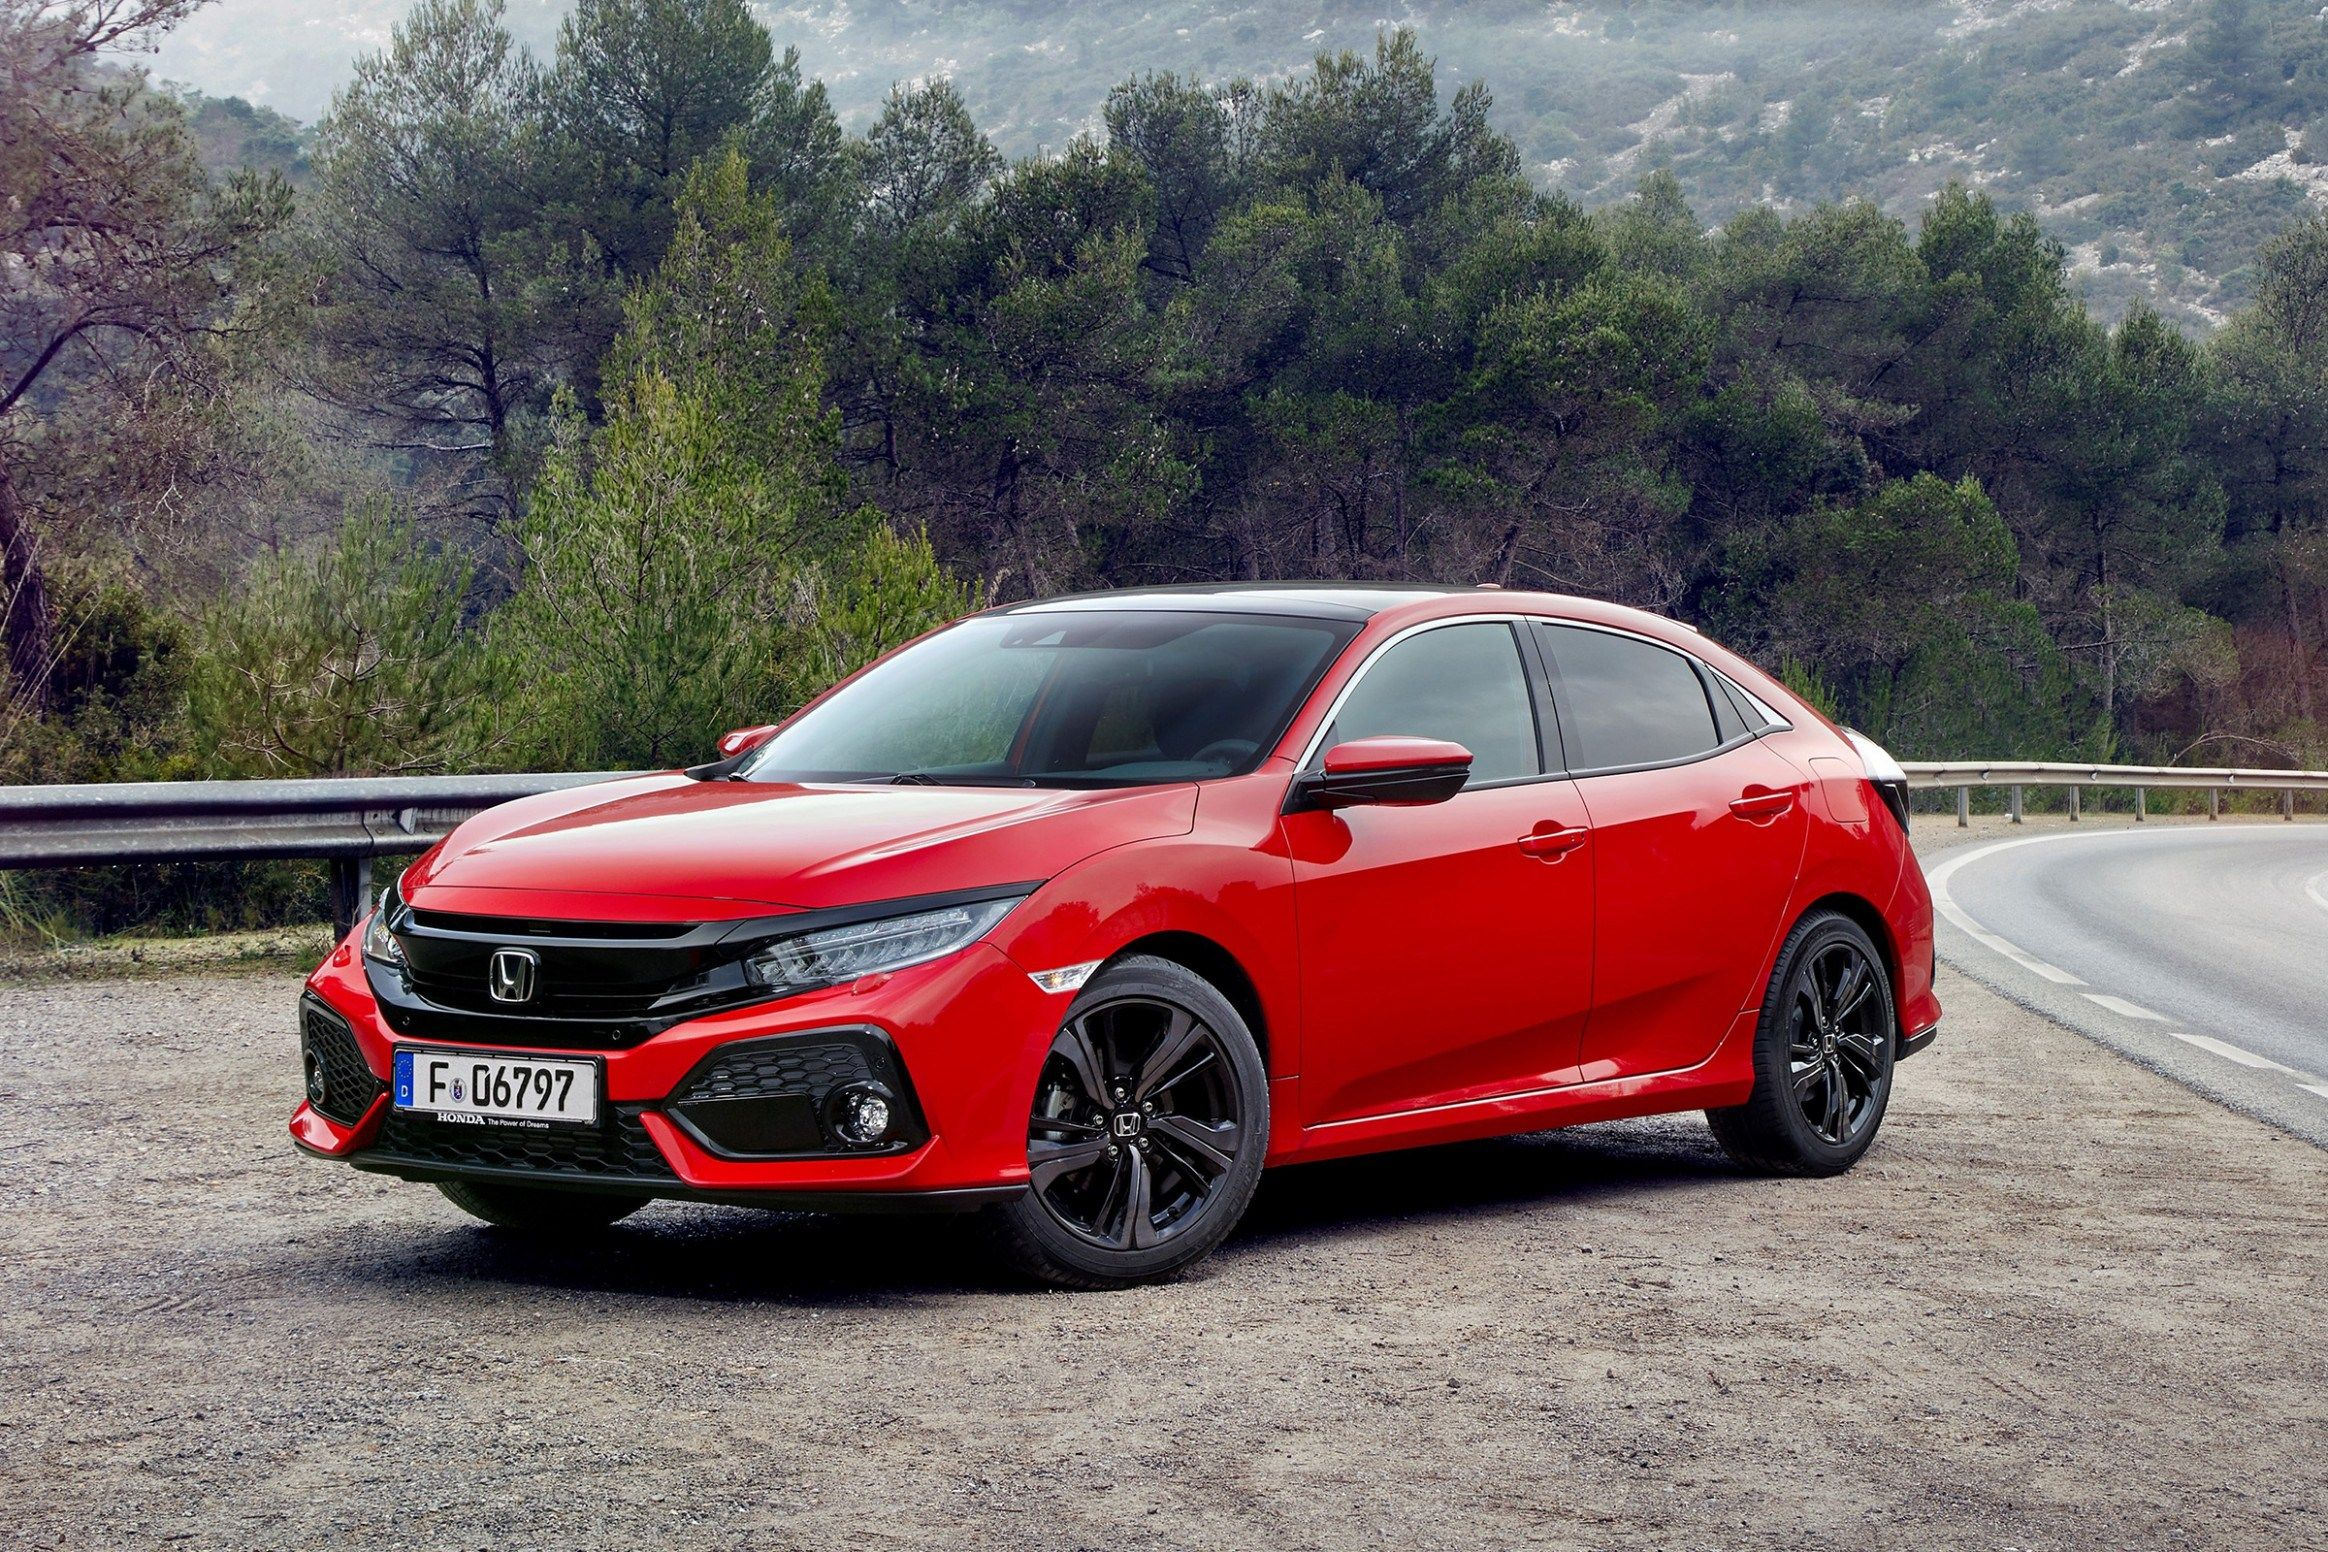 Five Doubts About Auto Civic Honda You Should Clarify Auto Civic